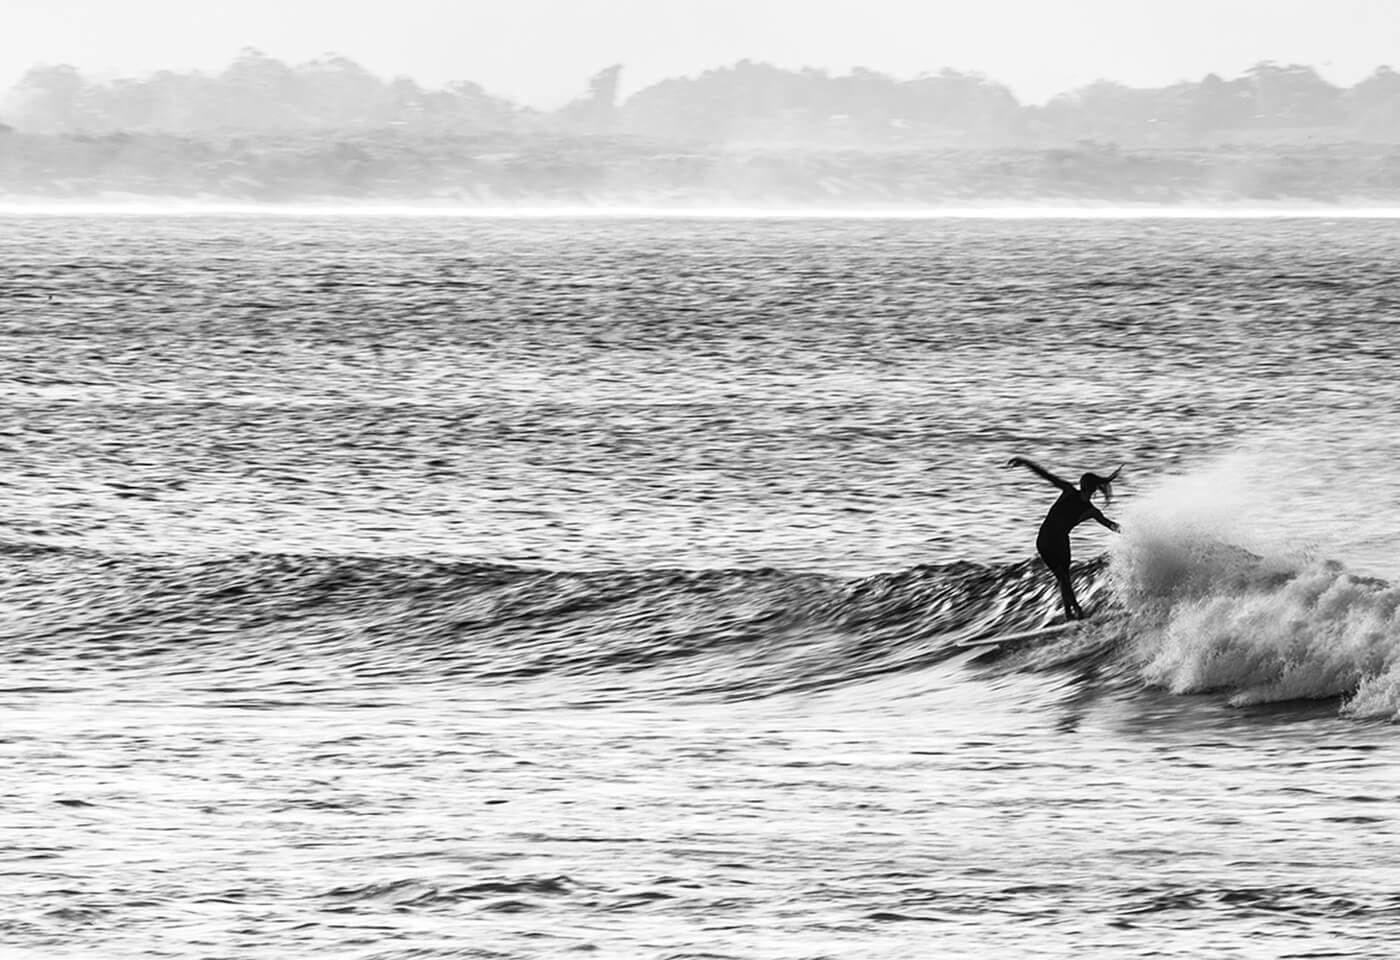 black and white image of a female surfer riding a wave